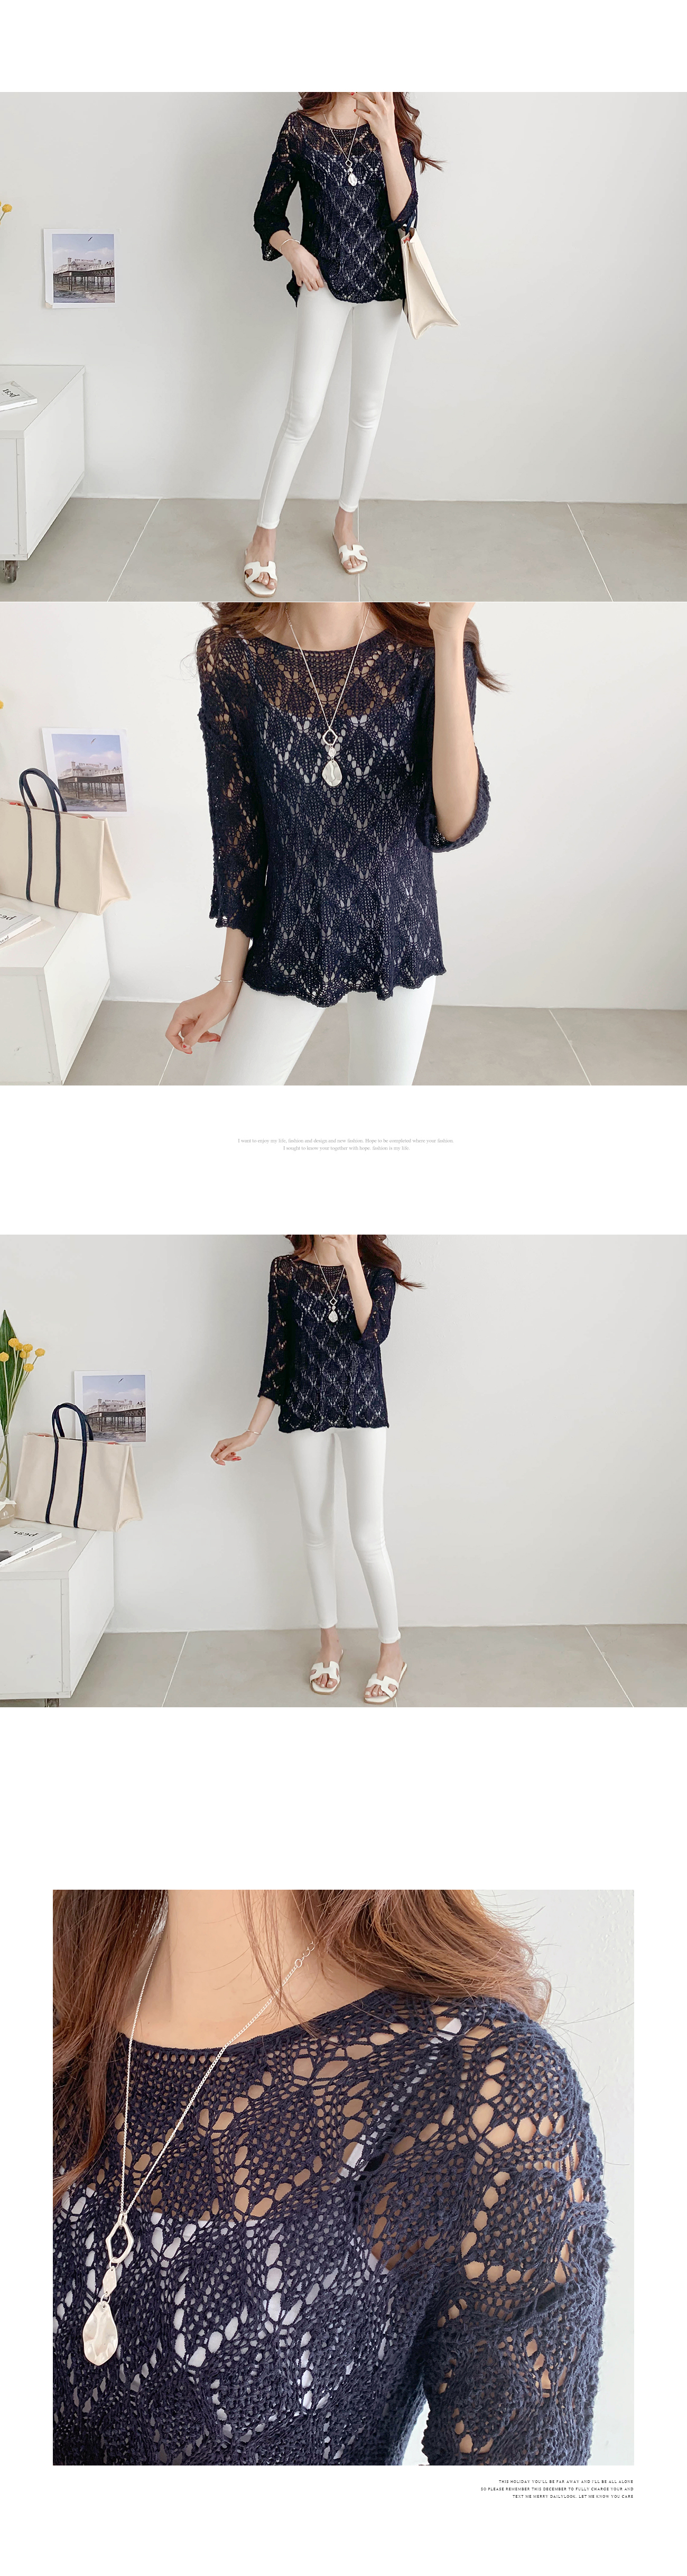 Chalong loose fit see-through knit #107191